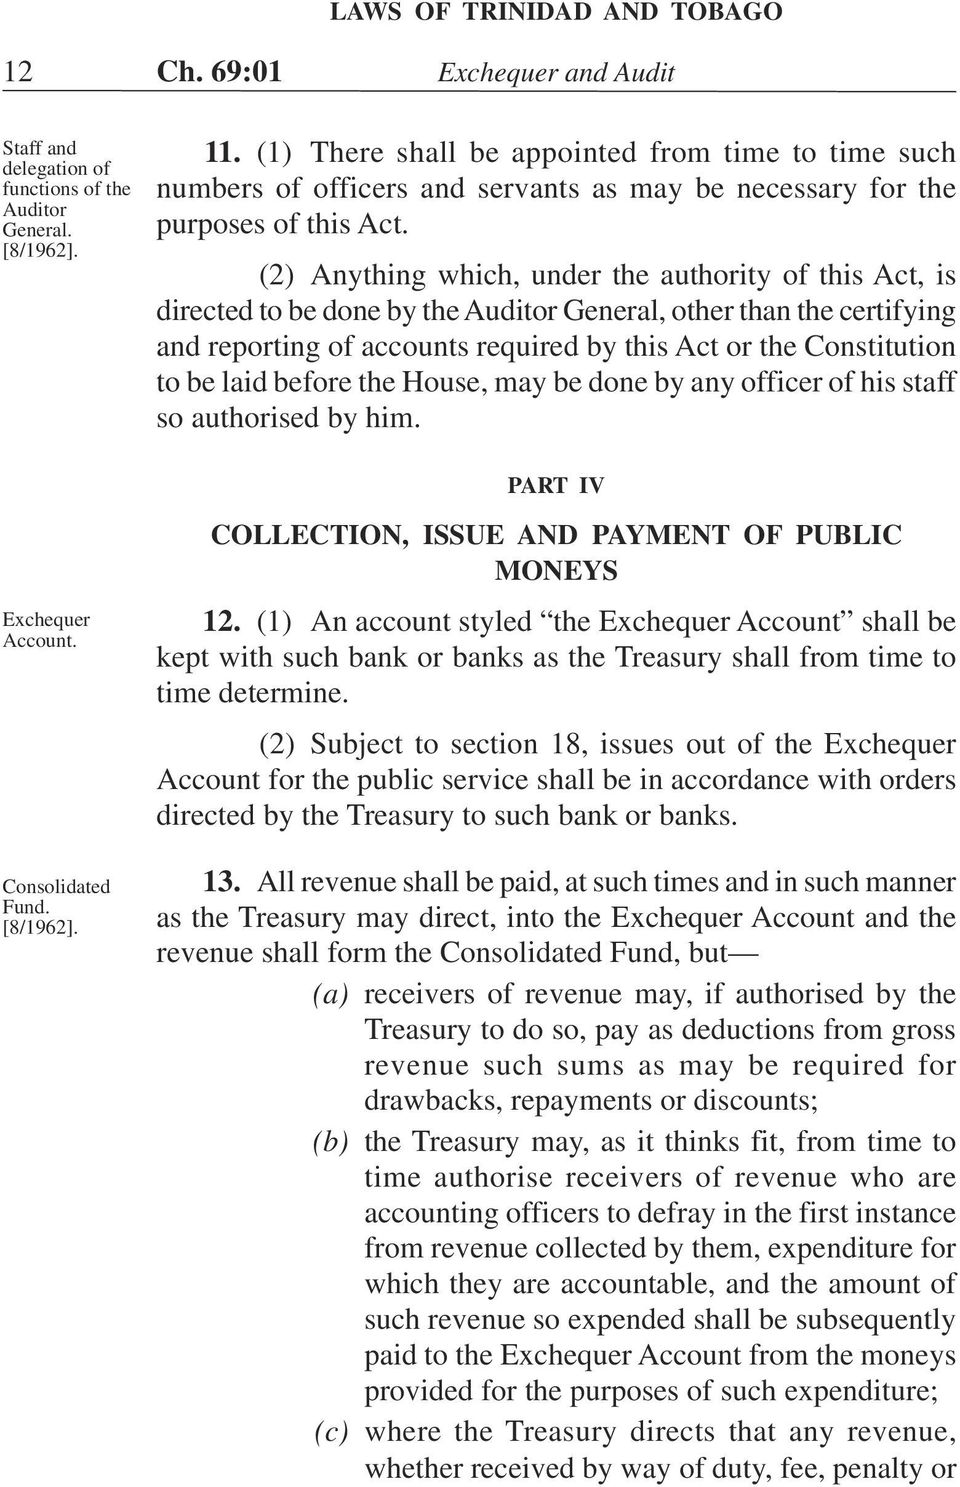 (2) Anything which, under the authority of this Act, is directed to be done by the Auditor General, other than the certifying and reporting of accounts required by this Act or the Constitution to be